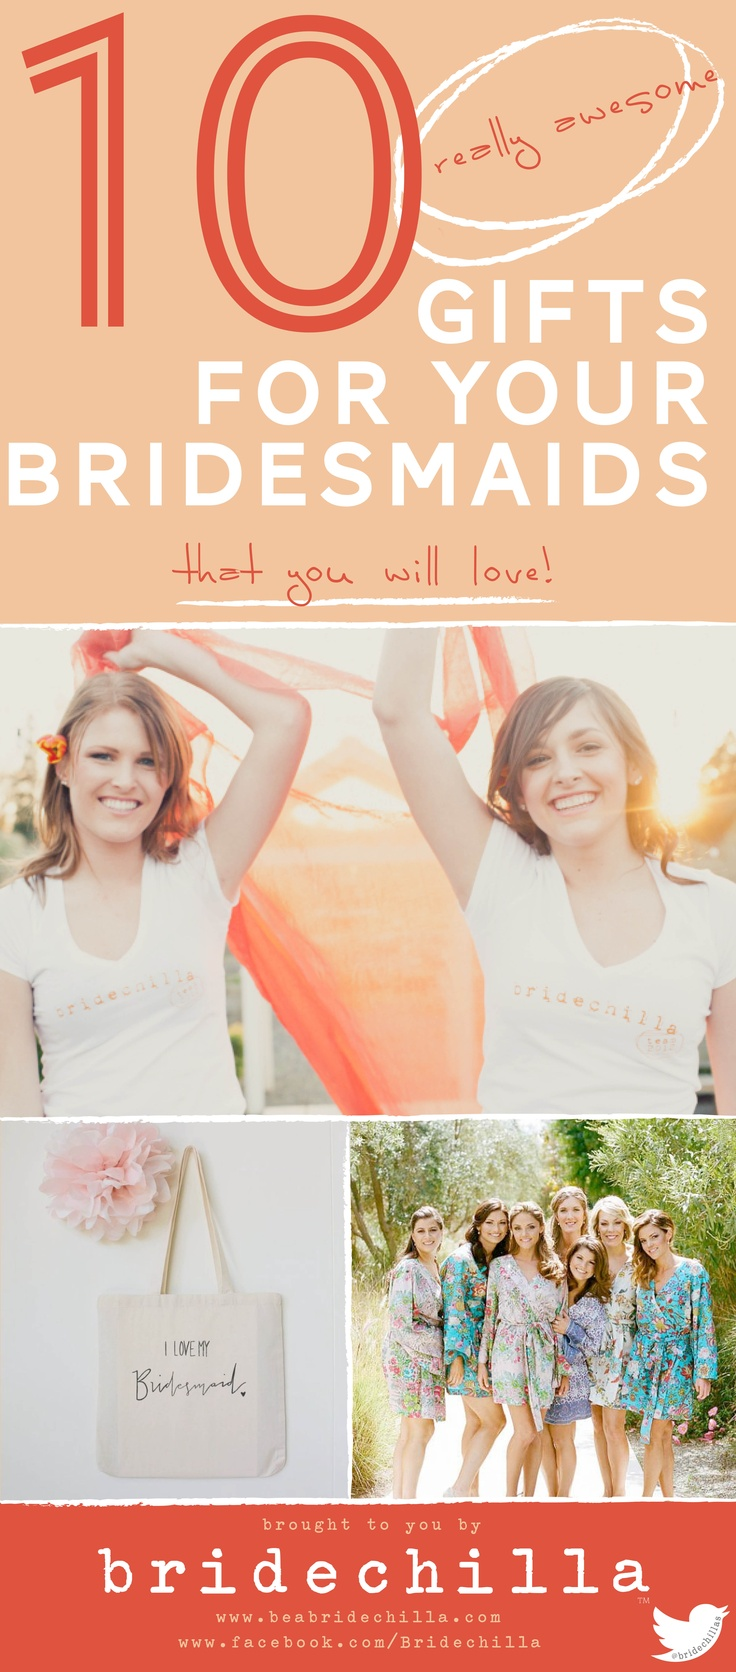 239 best images about Wedding Ideas on Pinterest Pearls Wedding